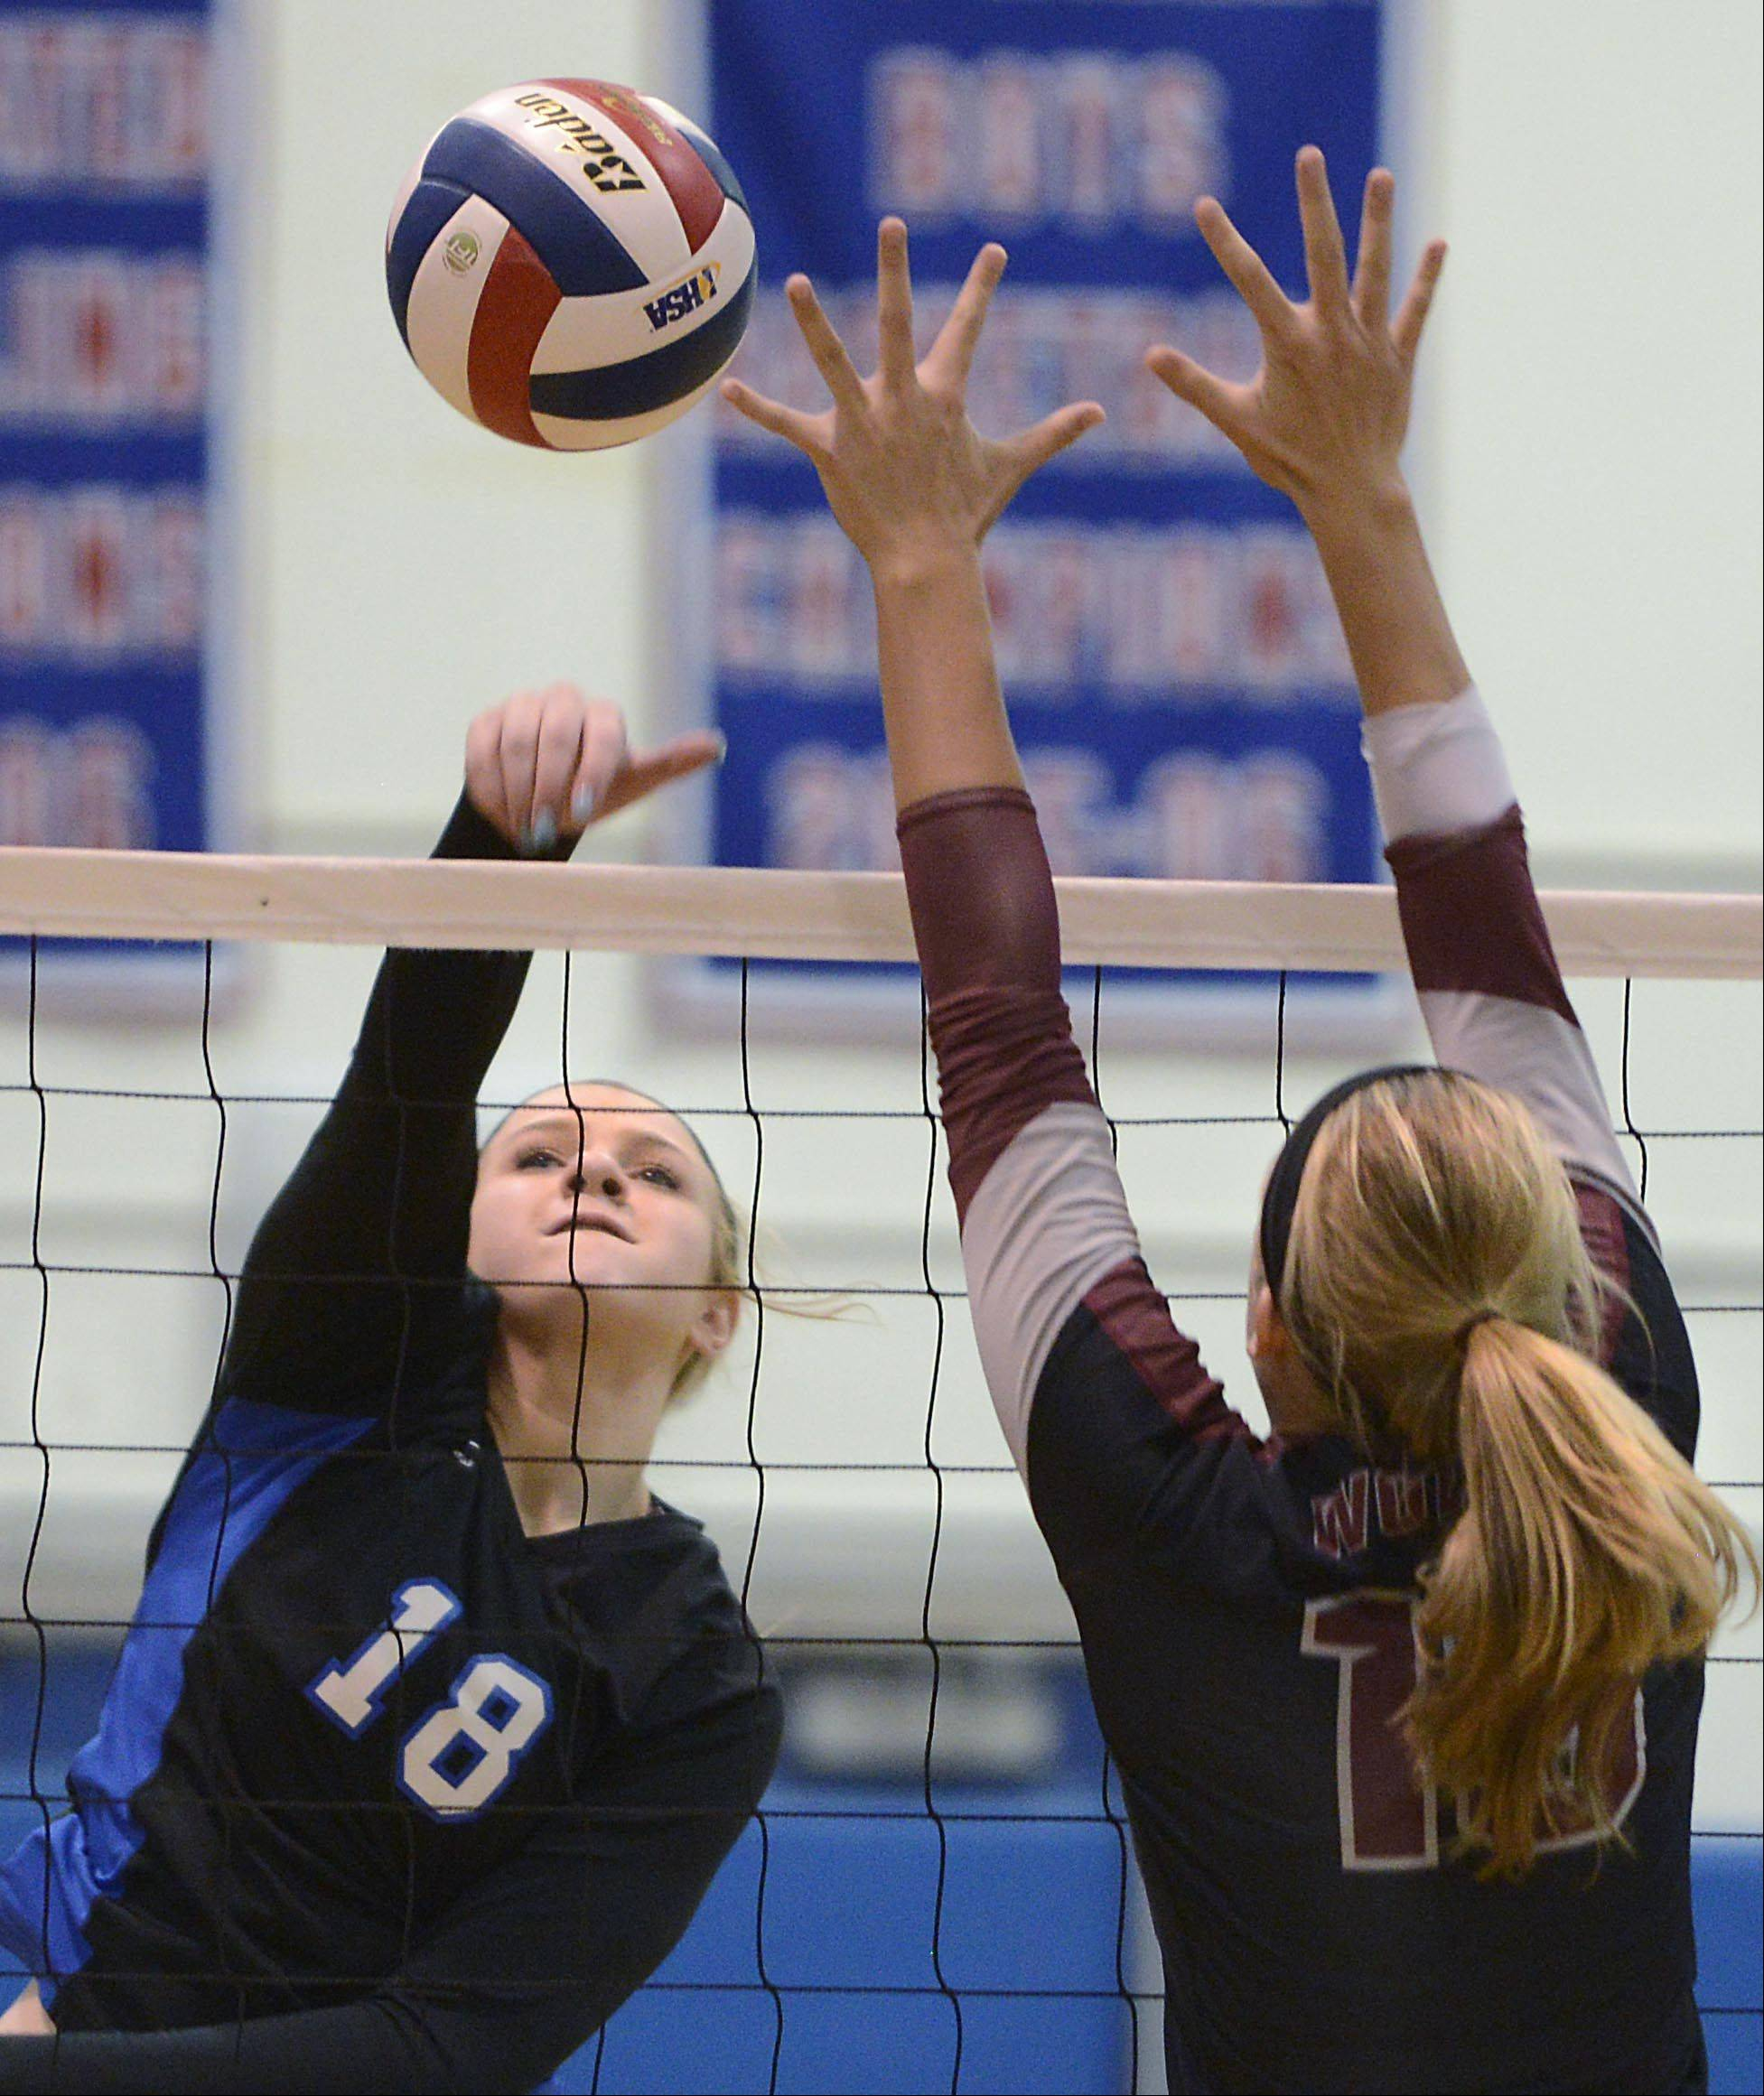 Dundee-Crown's Kailey Moll sends a shot past Prairie Ridge's Ali Witt Monday in Carpentersville.